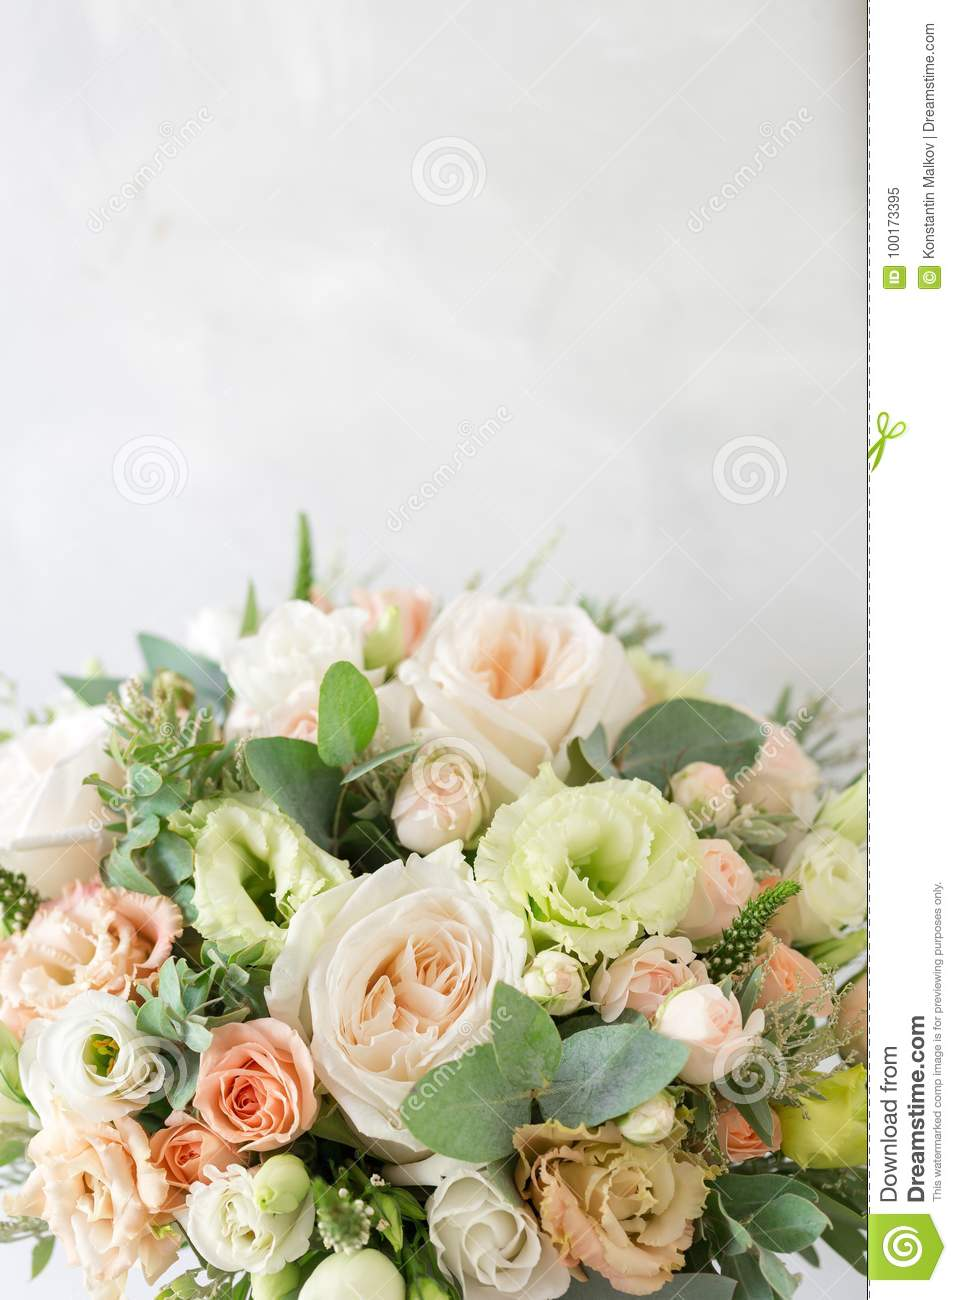 Bridal bouquet a simple bouquet of flowers and greens stock image download bridal bouquet a simple bouquet of flowers and greens stock image image of izmirmasajfo